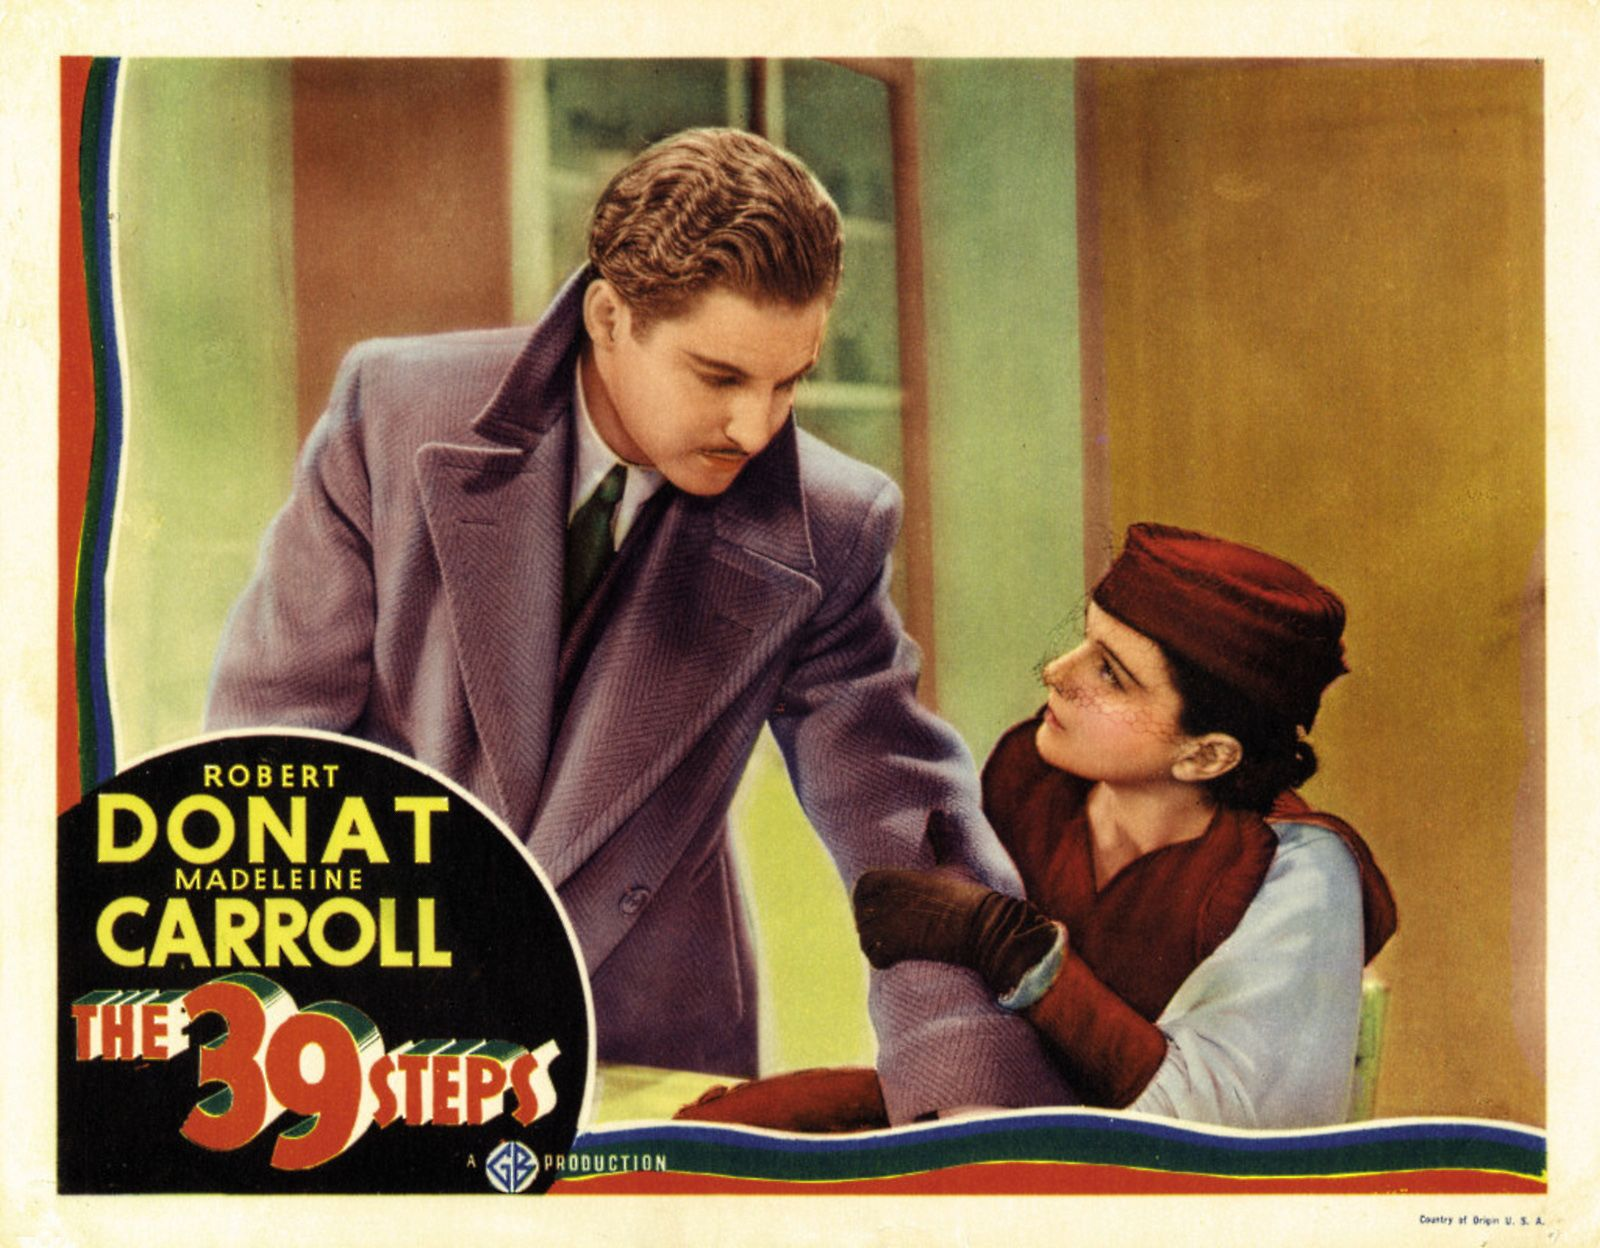 Gaumont-British Picture Corp., 1935.  Directed by Alfred Hitchcock.  Camera:  Bernard Knowles.  With Robert Donat,  Madeleine Carroll, Lucie Mannheim, Godfrey Tearle, Peggy Ashcroft, John Laurie.